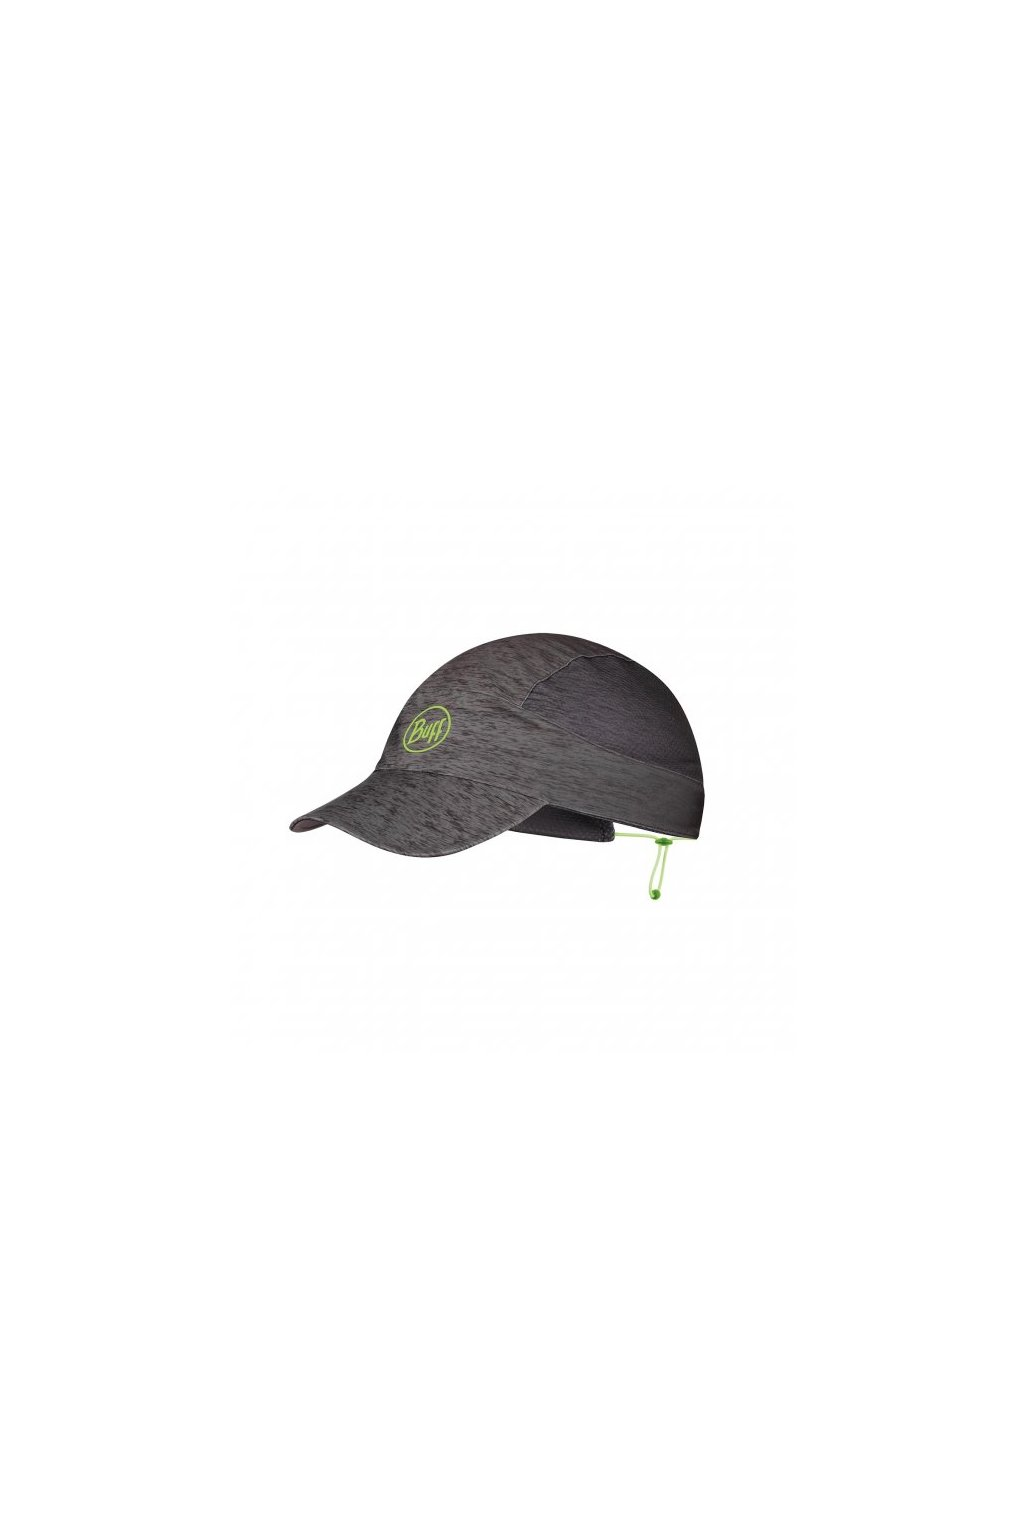 reflective pack run cap r grey htr 1225759371000 ss20